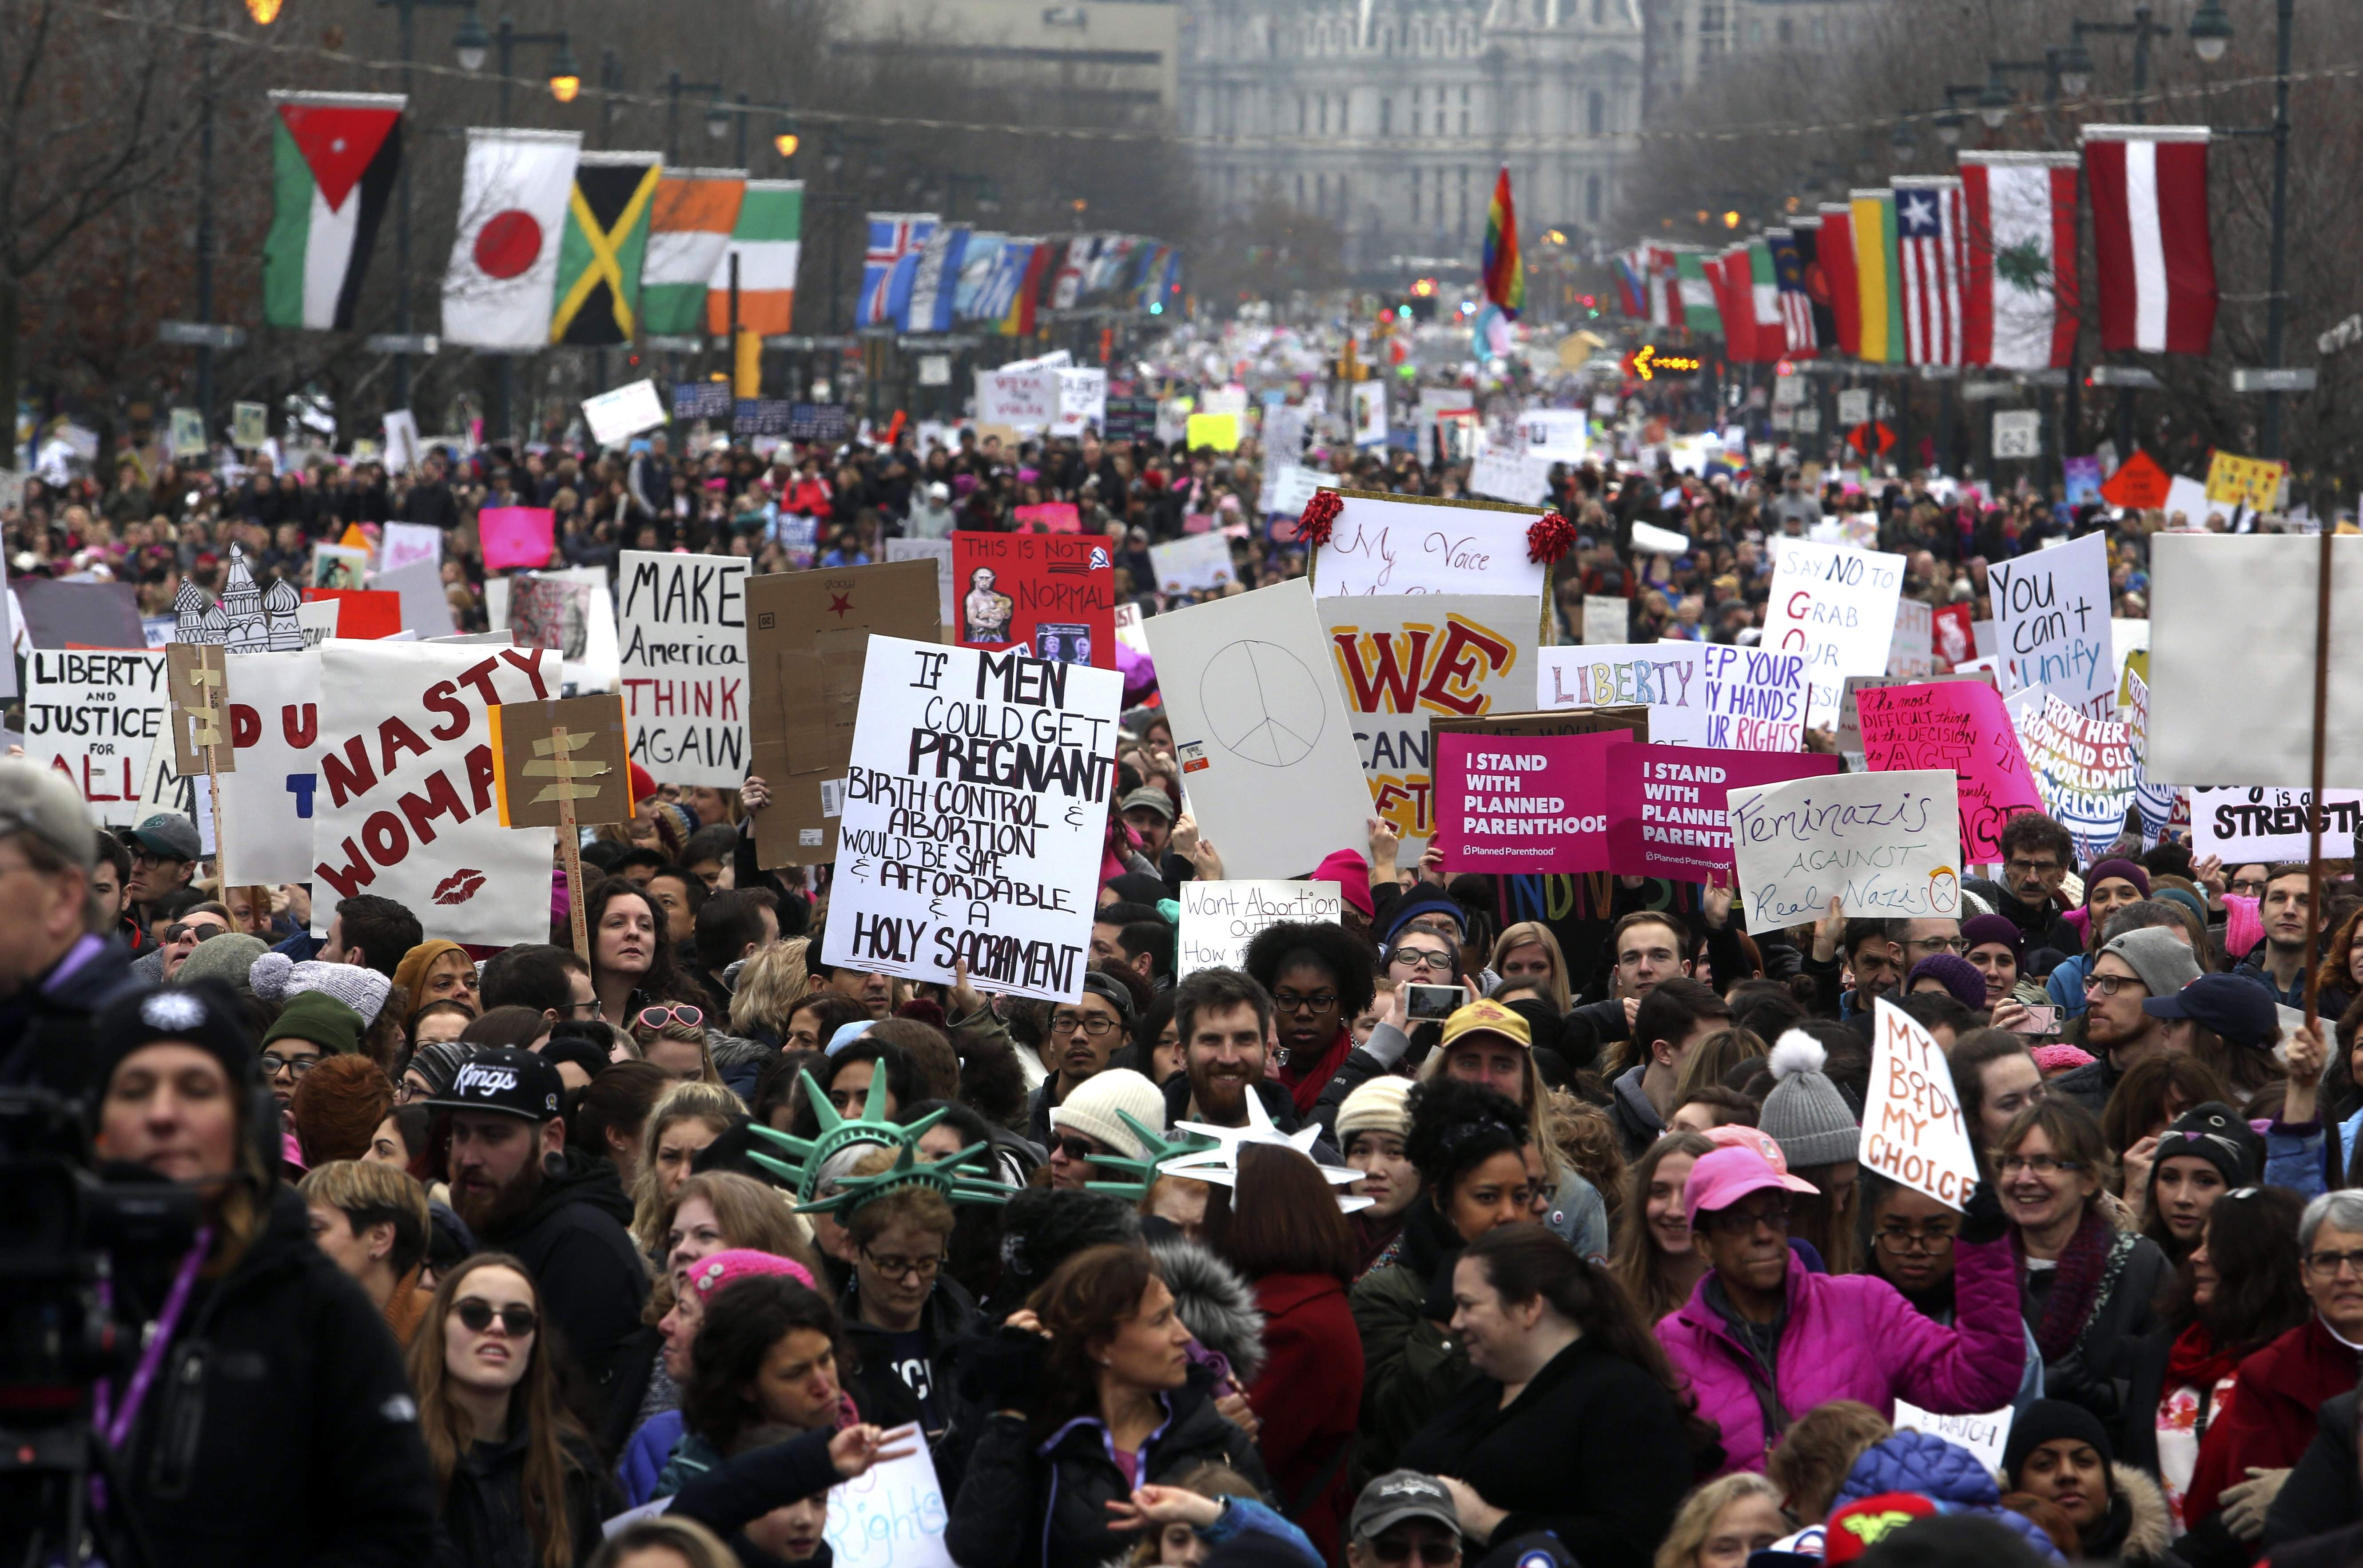 Thousands of protesters fill the Benjamin Franklin Parkway as they participate in a Women's March Saturday Jan. 21, 2017 in Philadelphia. The march is being held in solidarity with similar events taking place in Washington and around the nation. THE ASSOCIATED PRESS